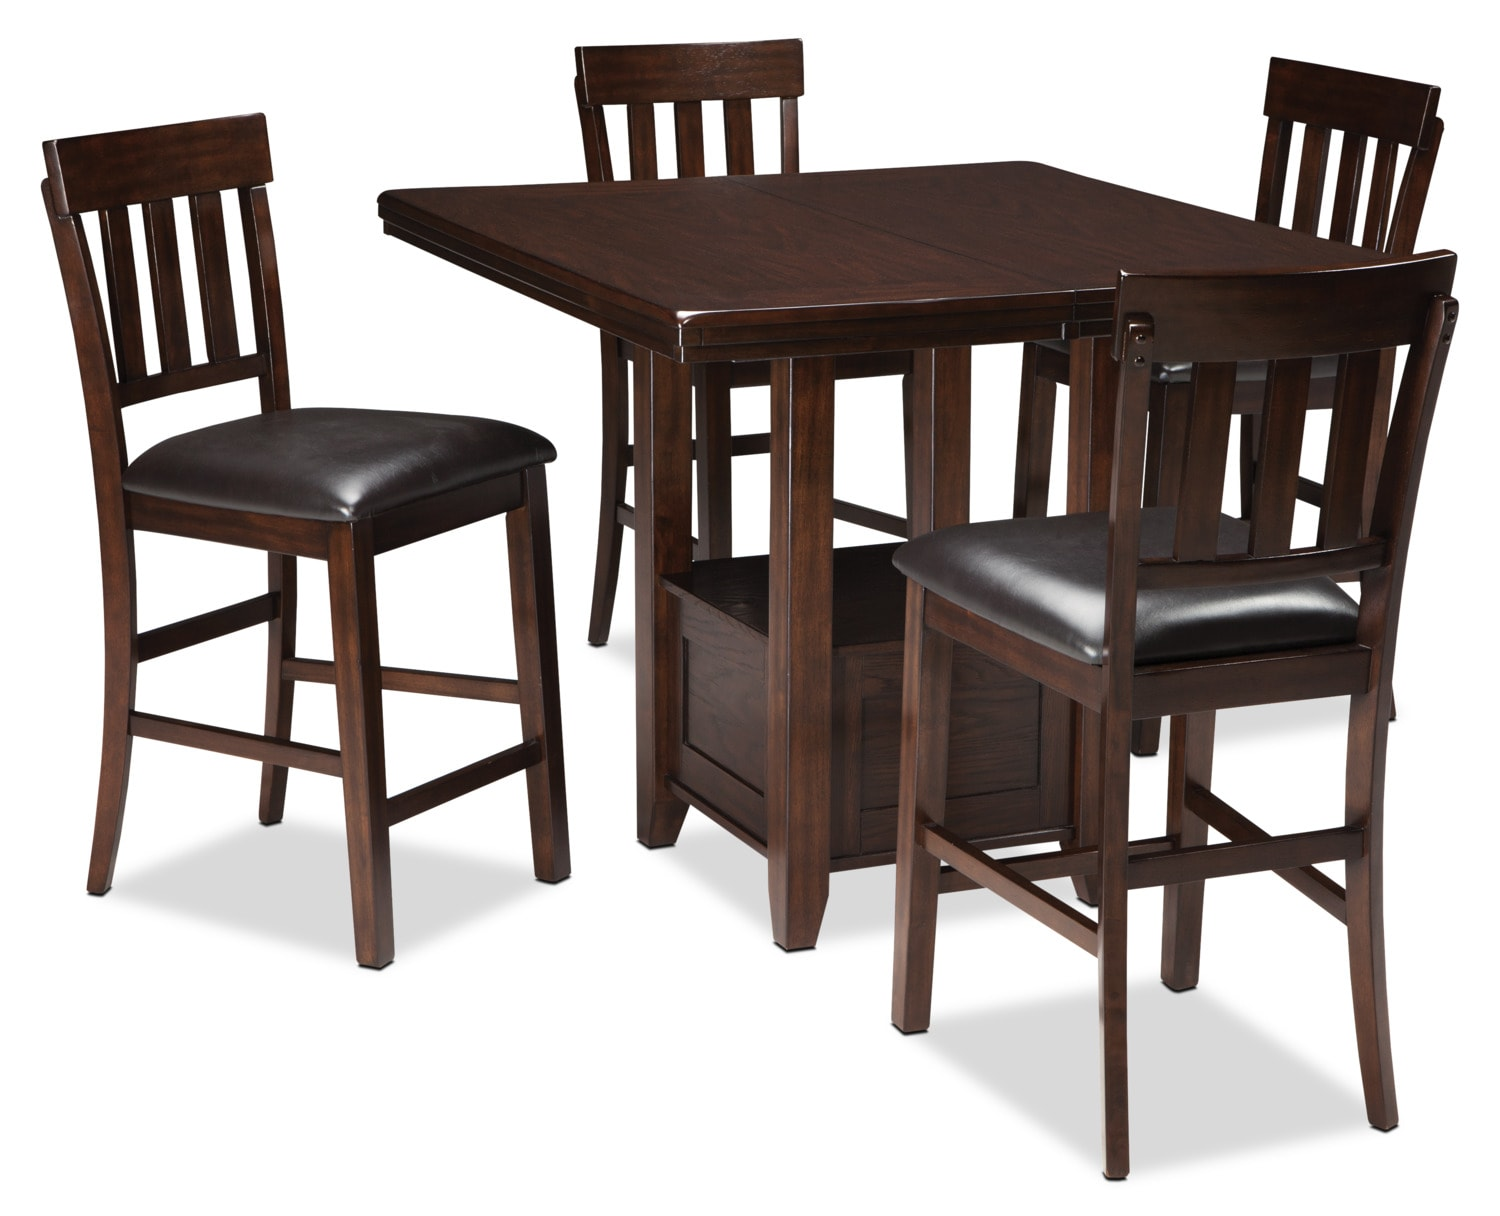 Dining Room Furniture - Haddigan 5-Piece Counter-Height Dining Package